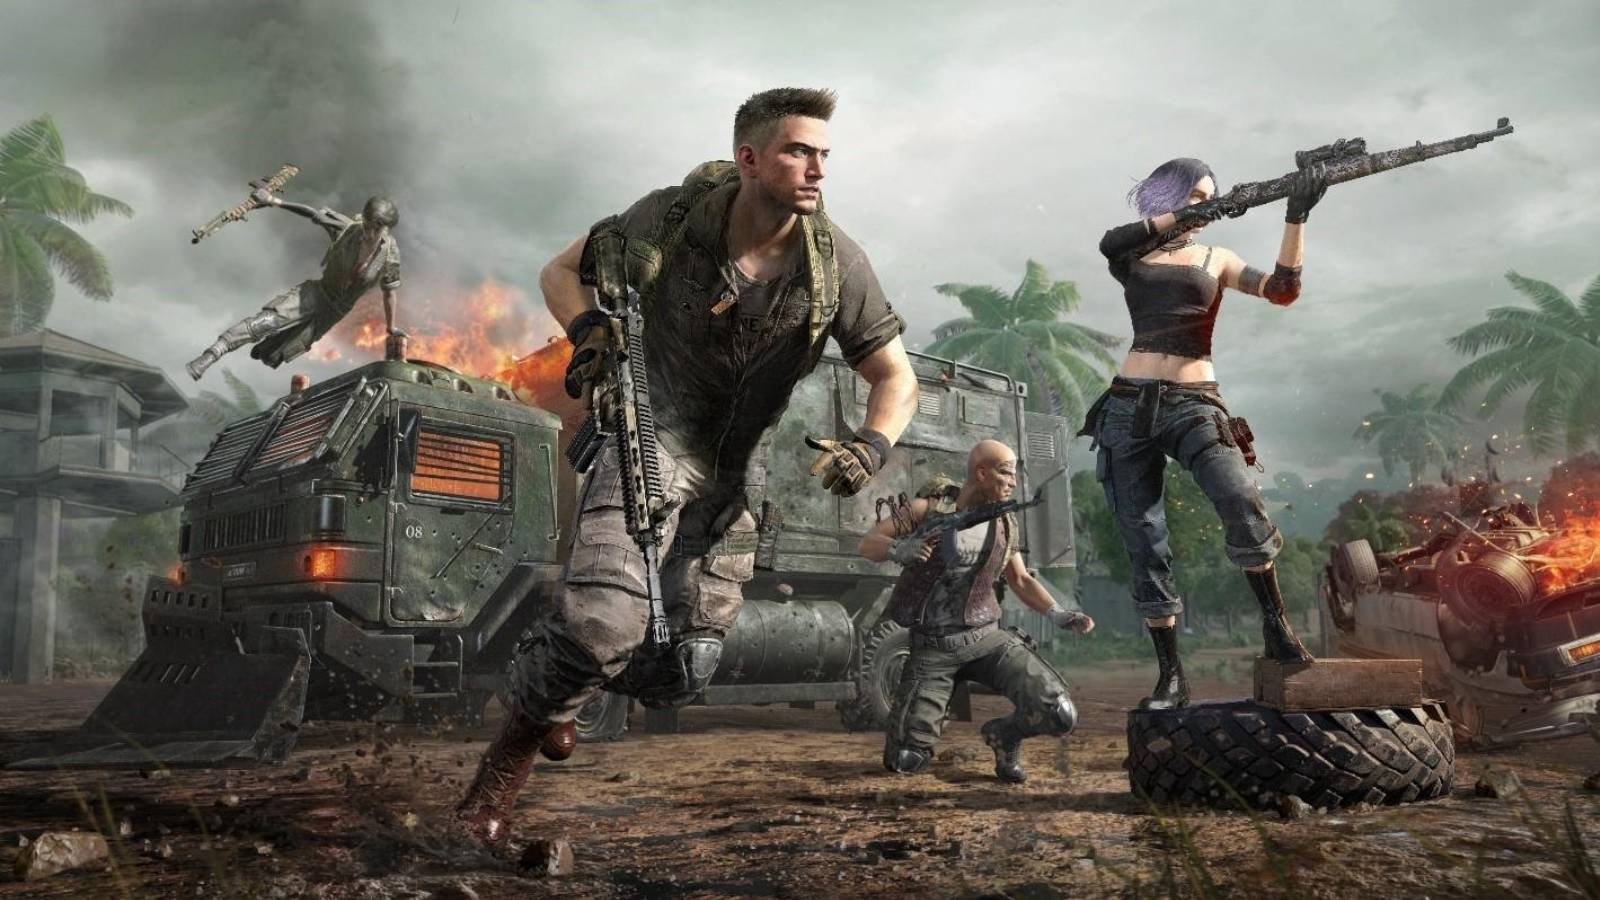 pubg-news:-all-the-latest-updates-for-playerunknown's-battlegrounds